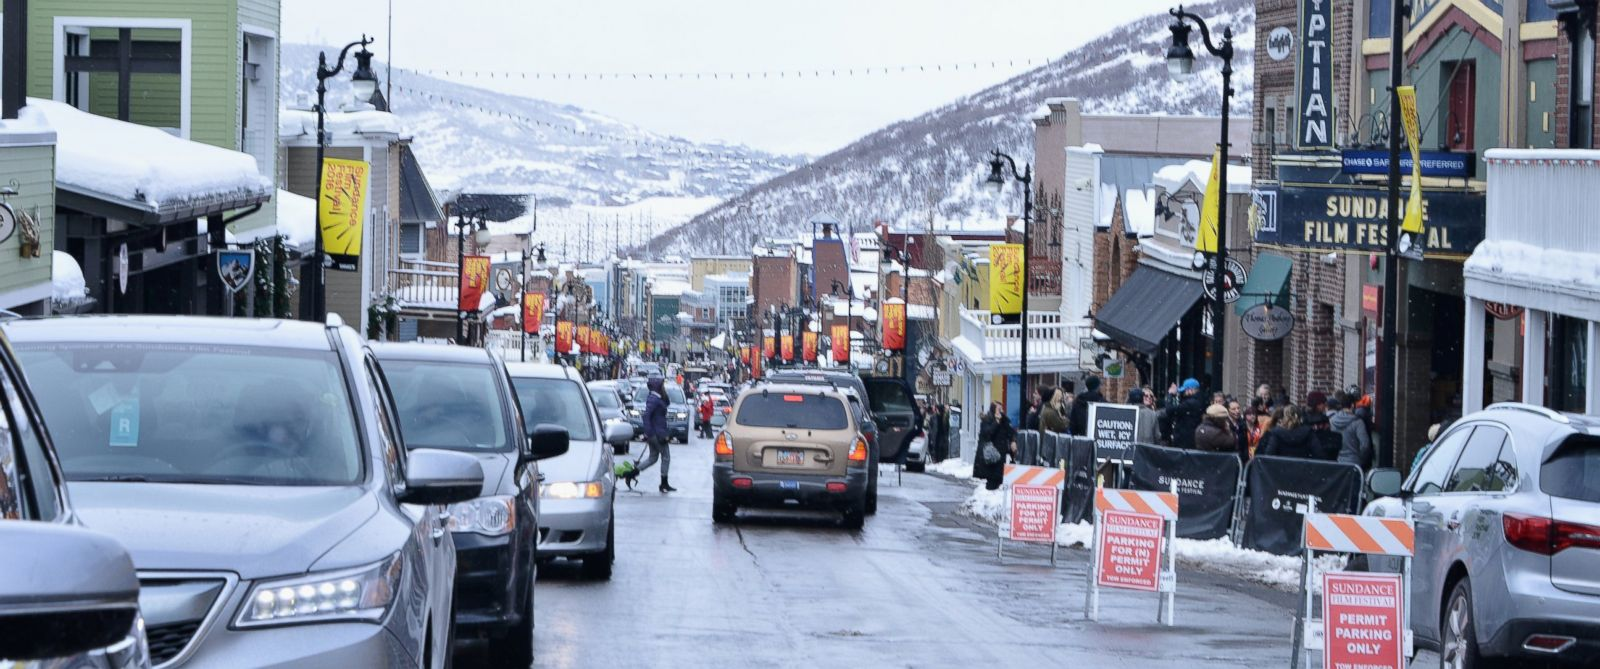 PHOTO: A view of the Egyptian Theatre on Main Street and outdoor atmosphere during 2016 Sundance Film Festival, Jan. 24, 2016, in Park City, Utah.